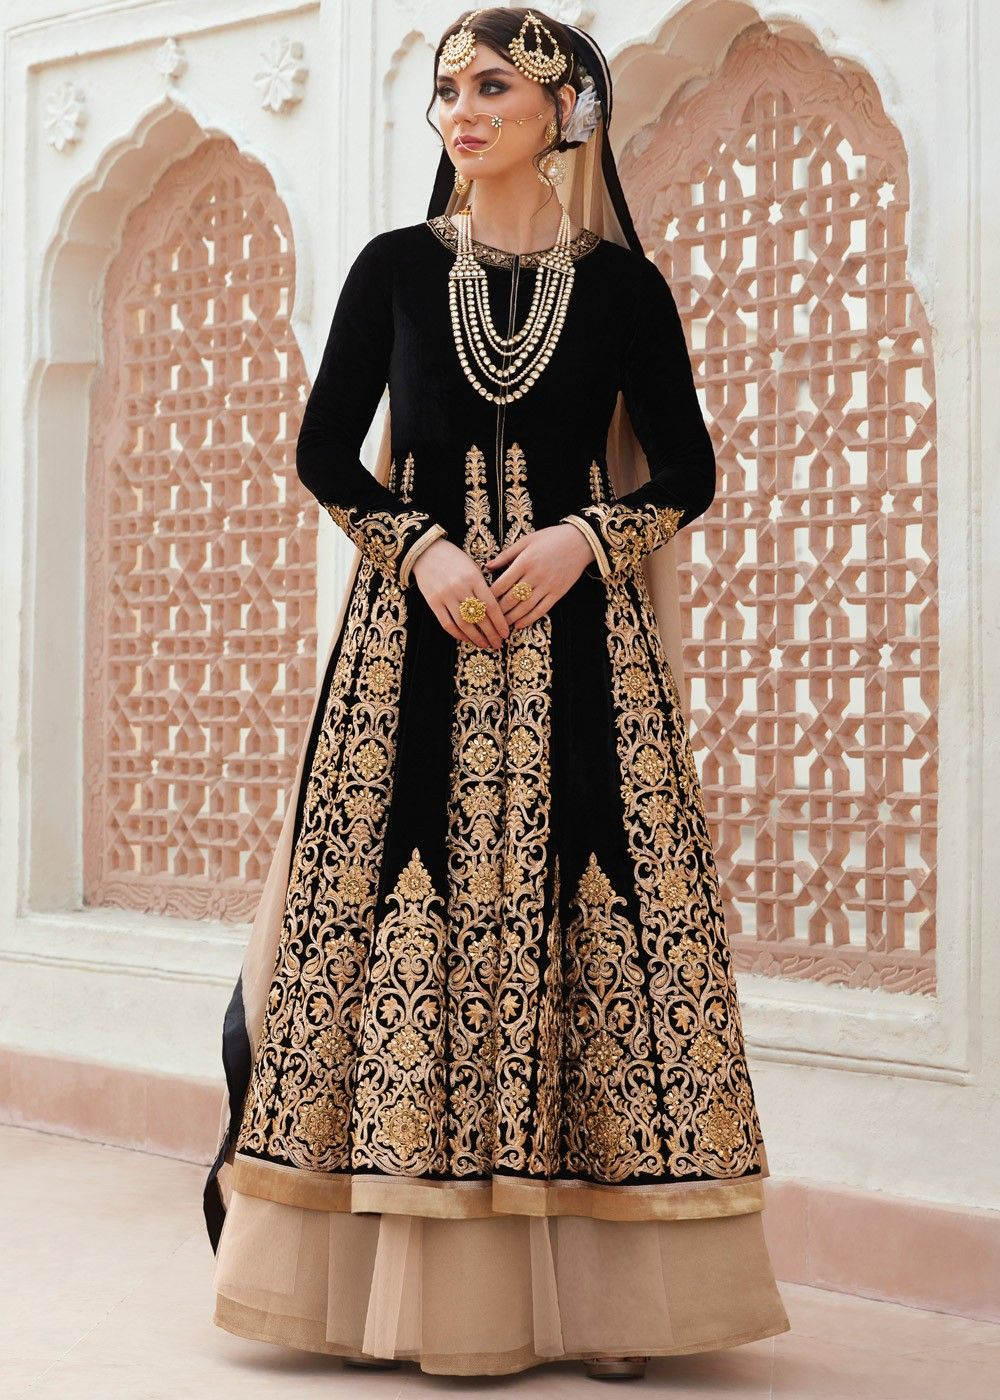 9a830456d1 Look marvellous in this #black #velvet #kurti style long #choli decked with  zari embroidery, lace and stone work.